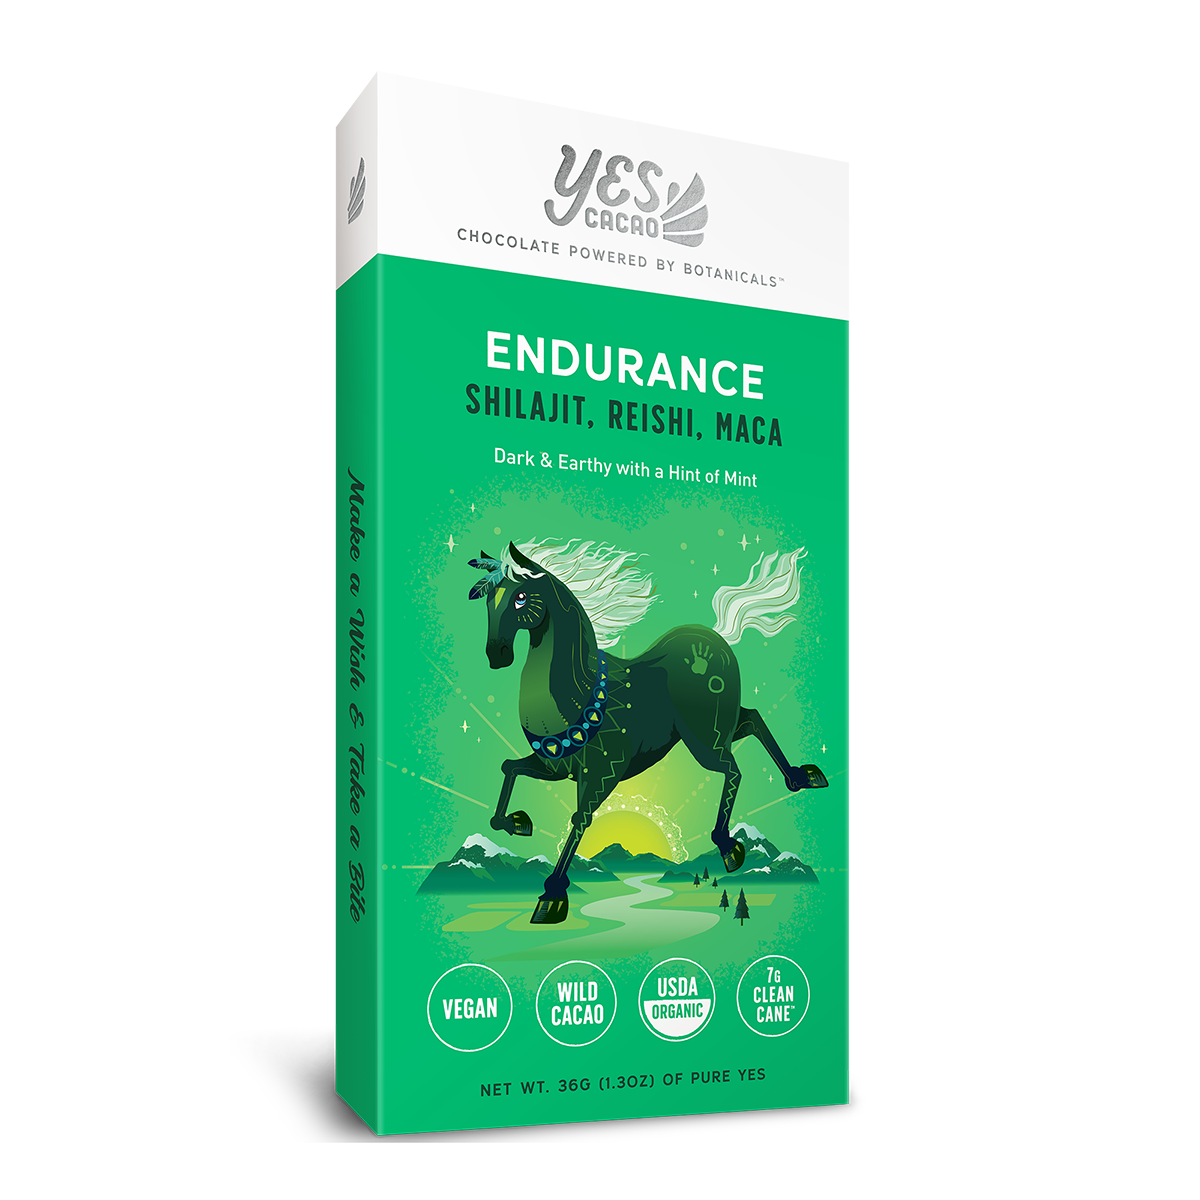 ENDURANCE Botanical Chocolate®